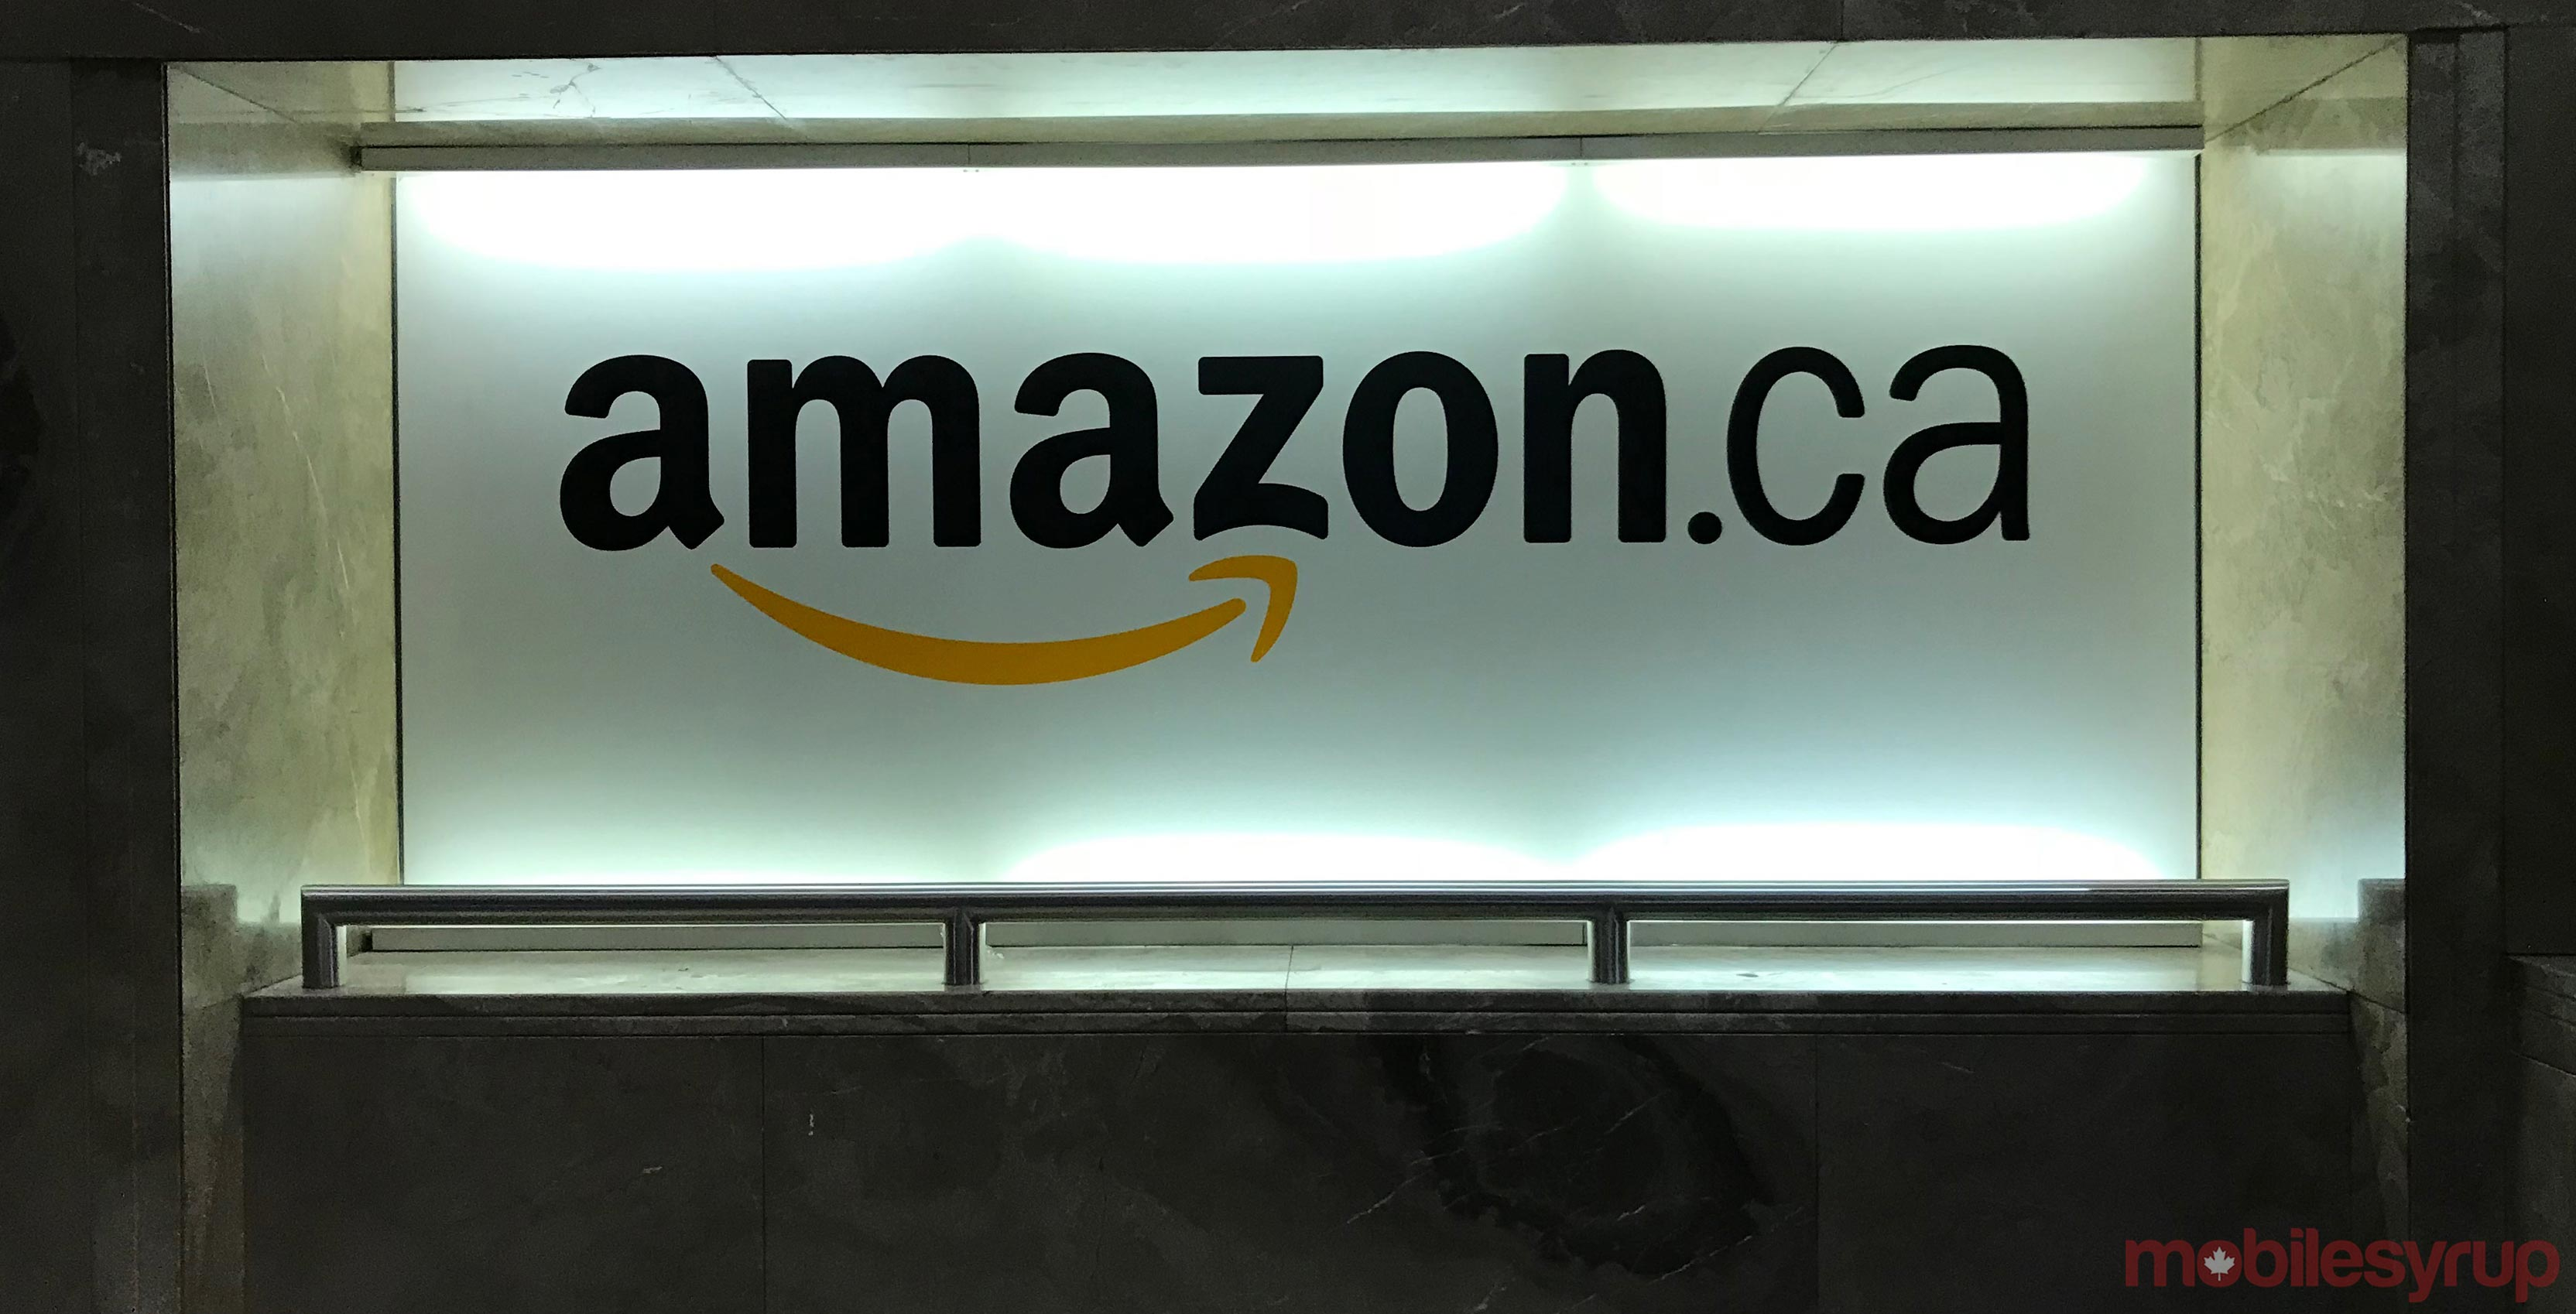 Kingston, Ontario, bought the most books on Amazon.ca this past year